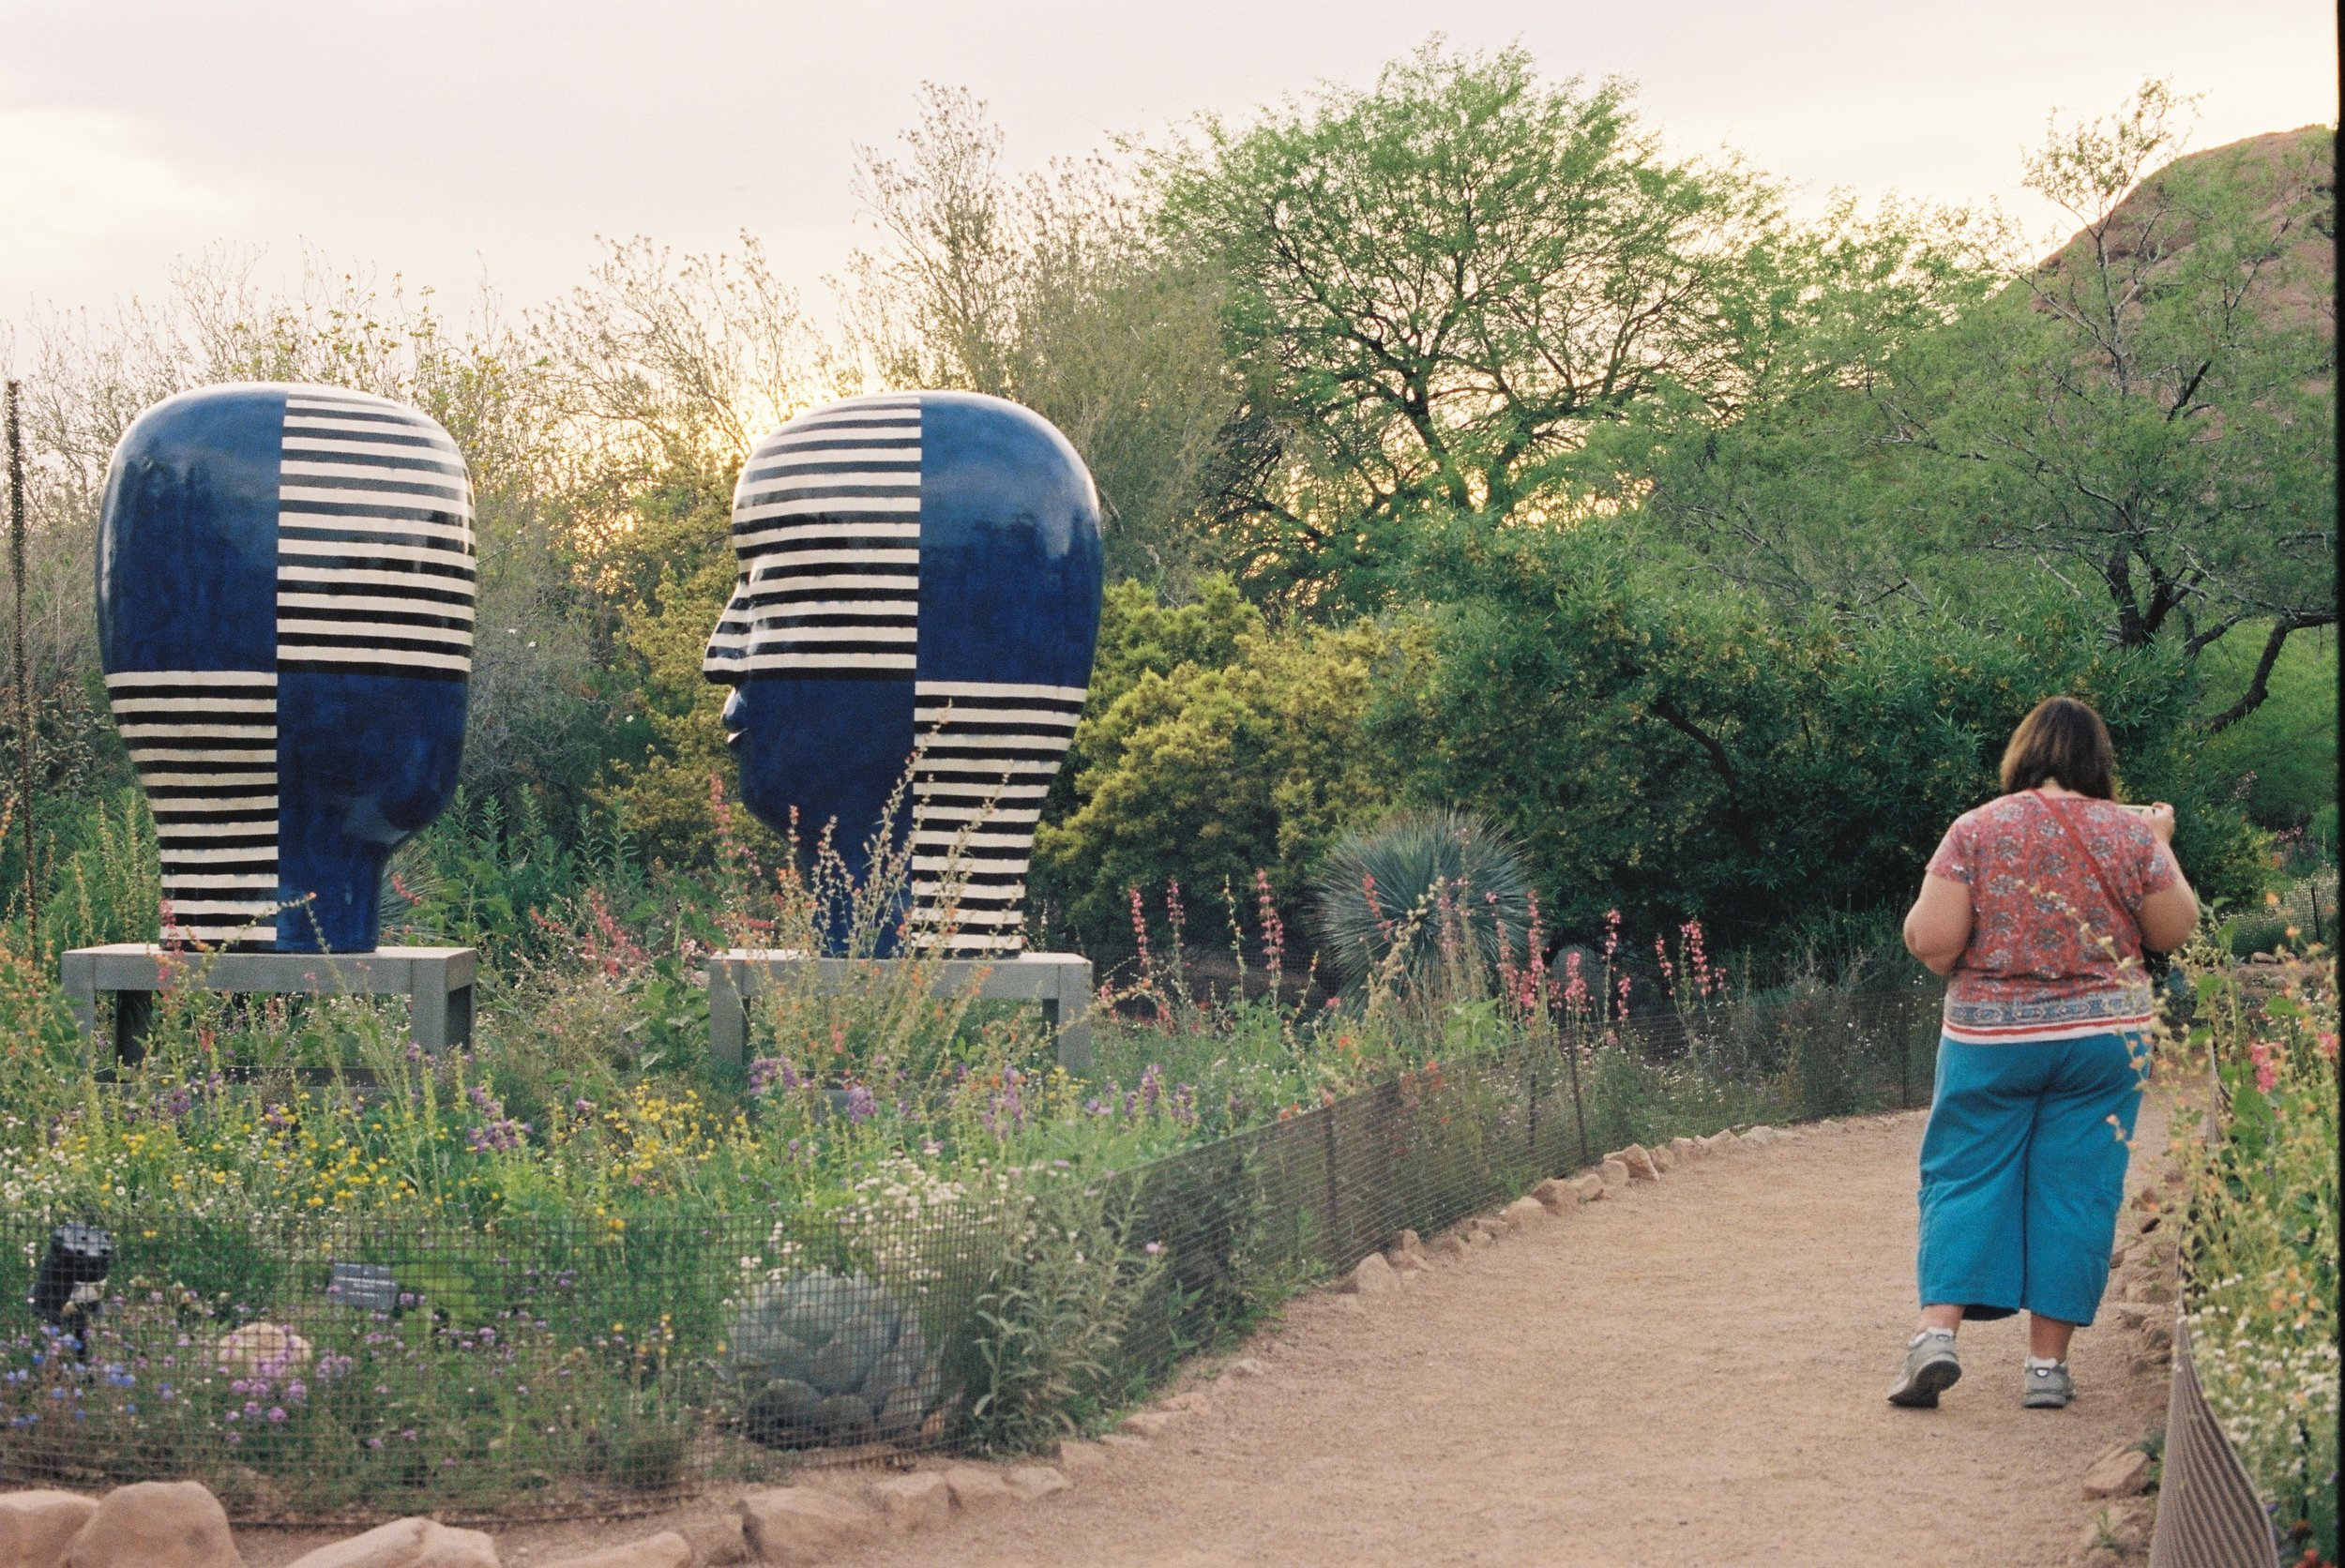 Sculpture at Desert Botanical Garden, Phoenix